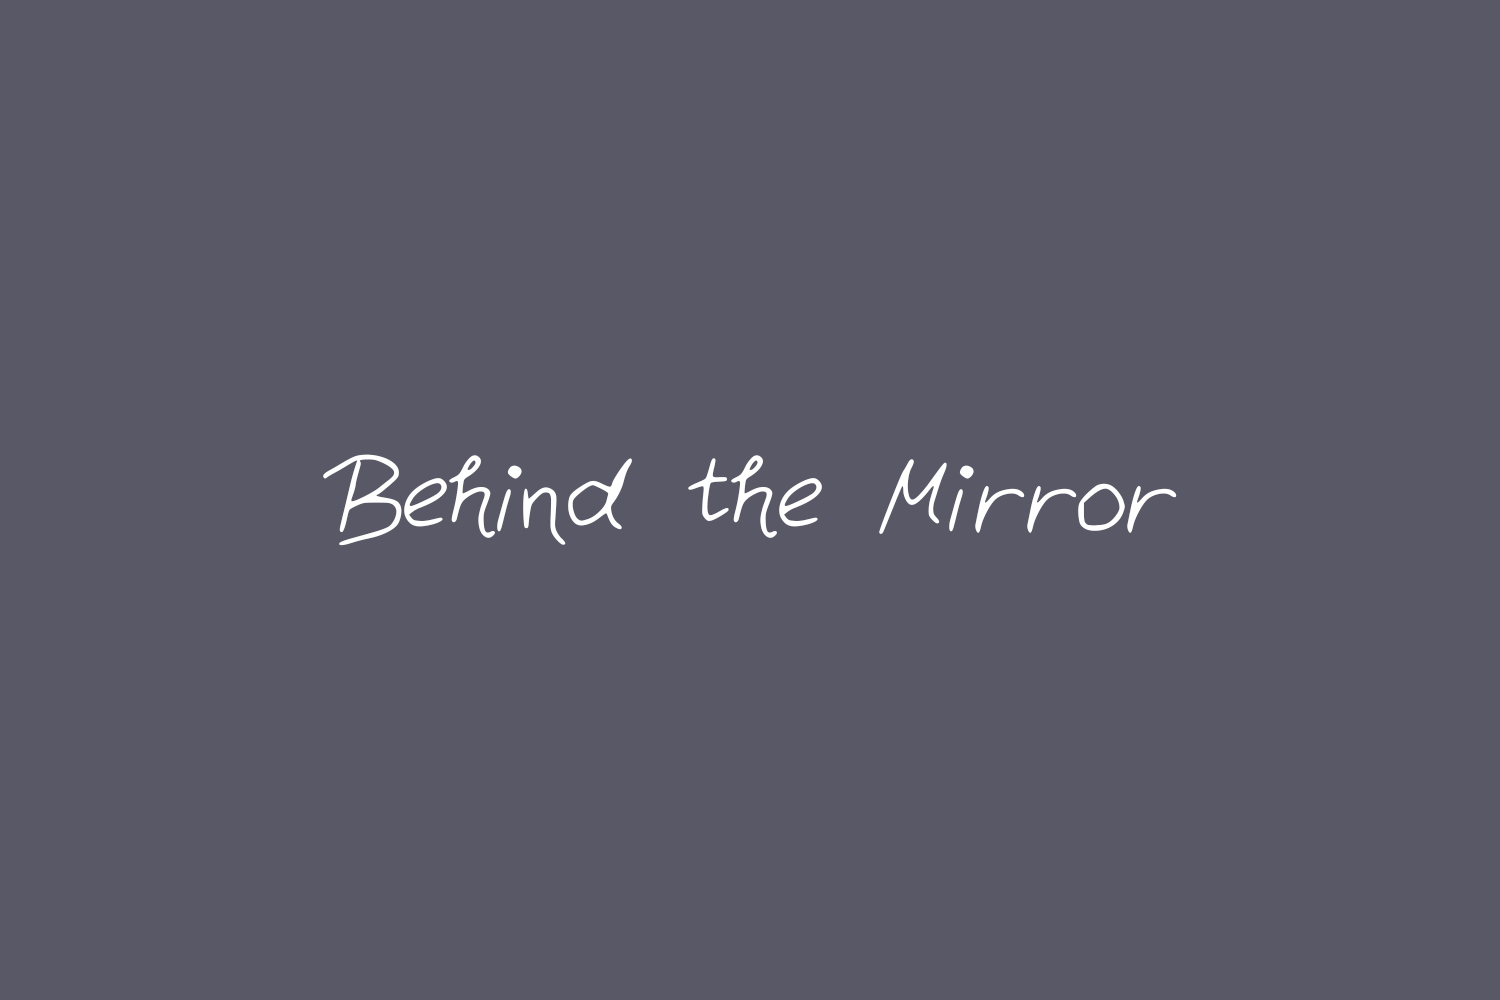 Behind the Mirror Free Font